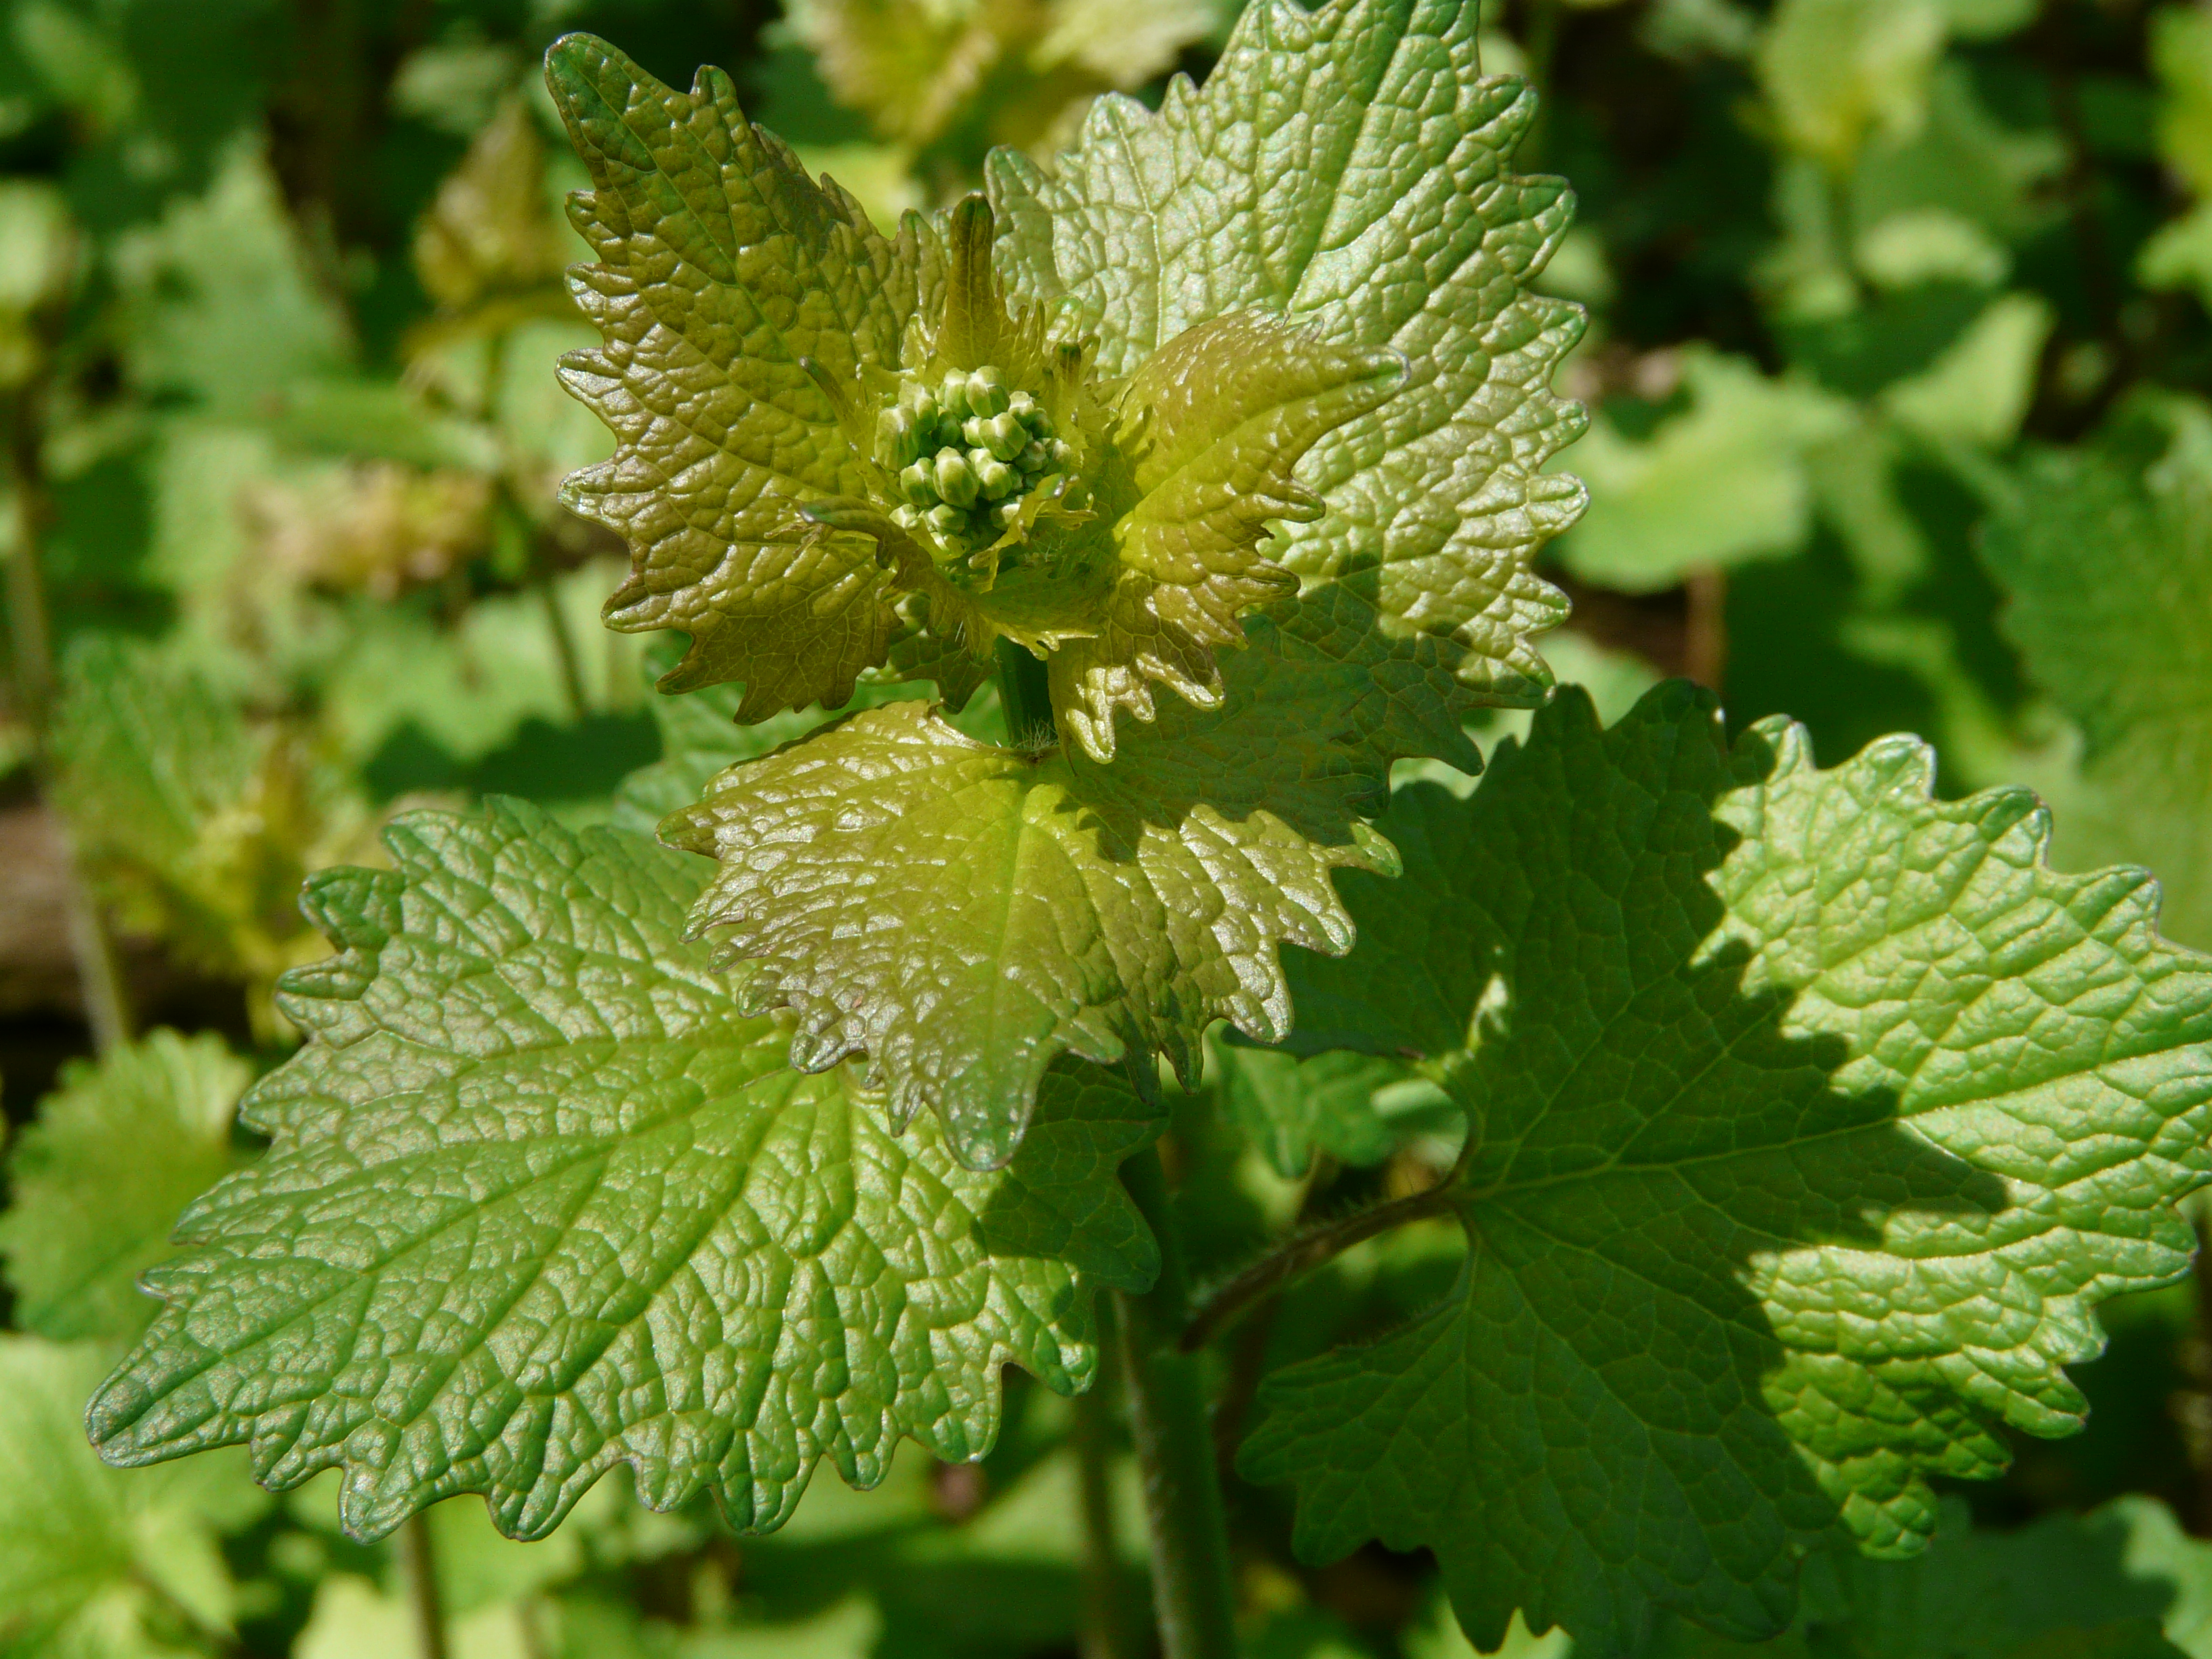 close up of garlic mustard shoot